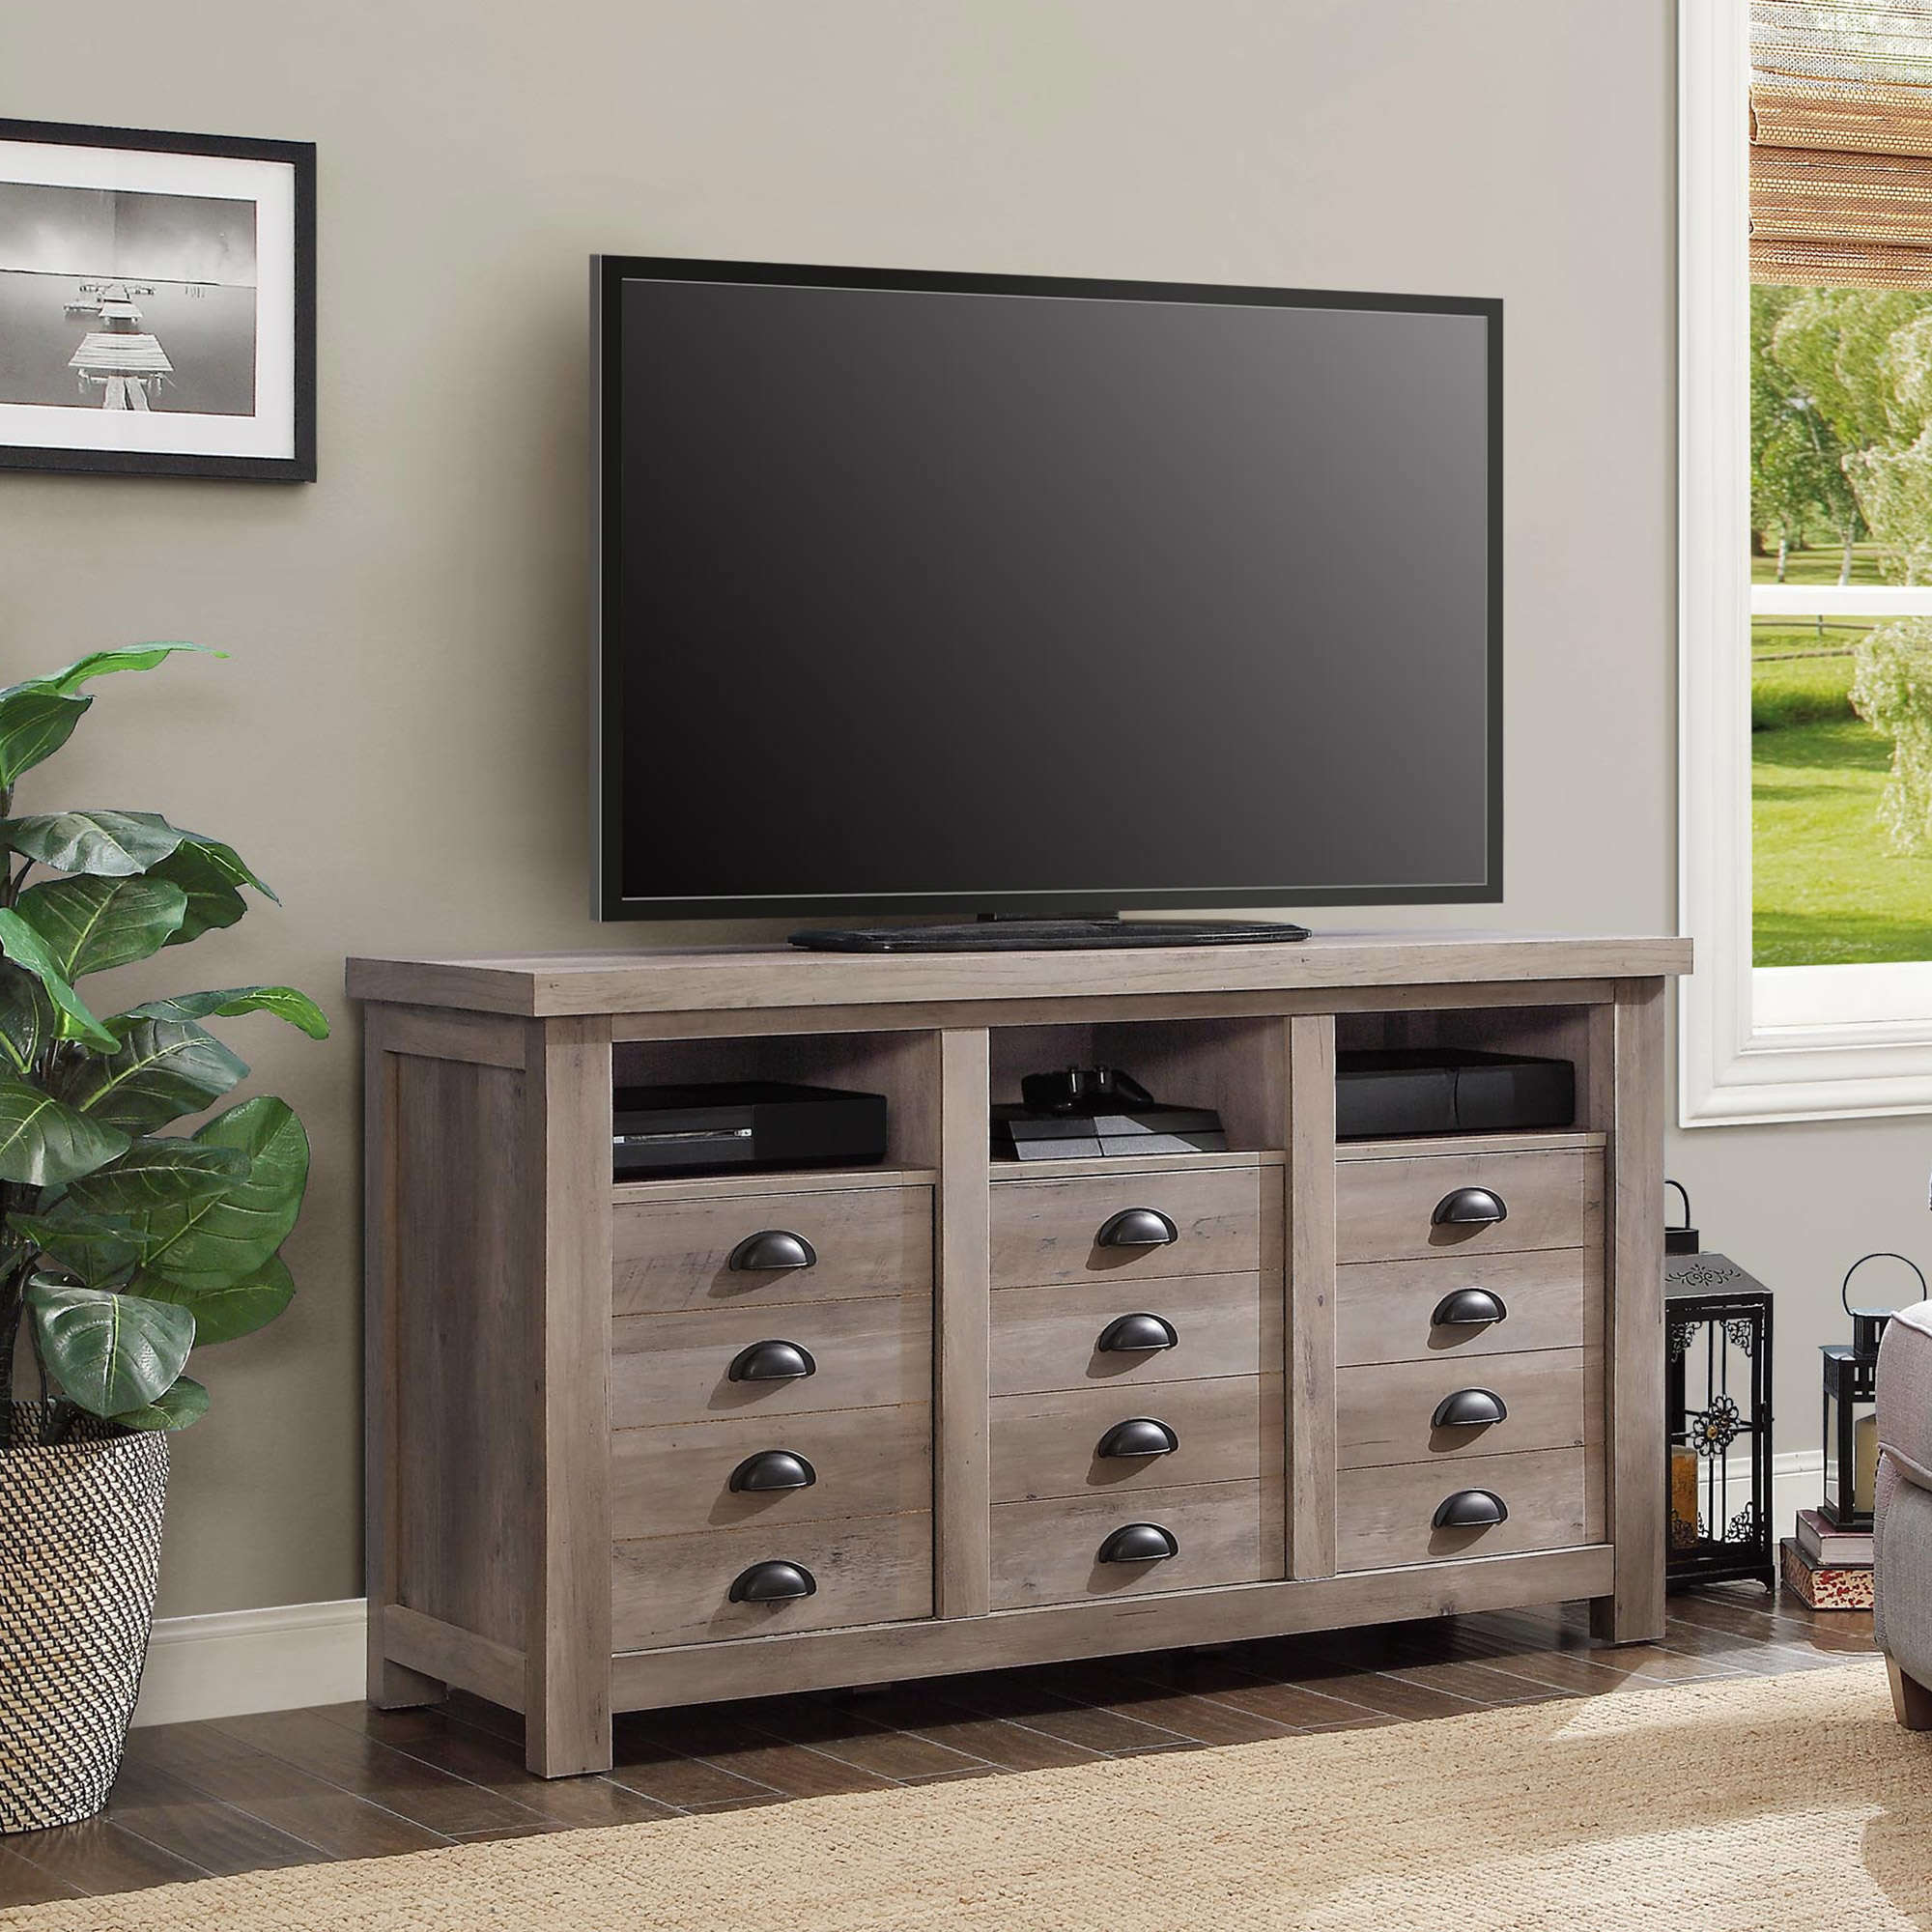 Better Homes And Gardens Granary Modern Farmhouse Printers TV Cabinet,  Multiple Finishes